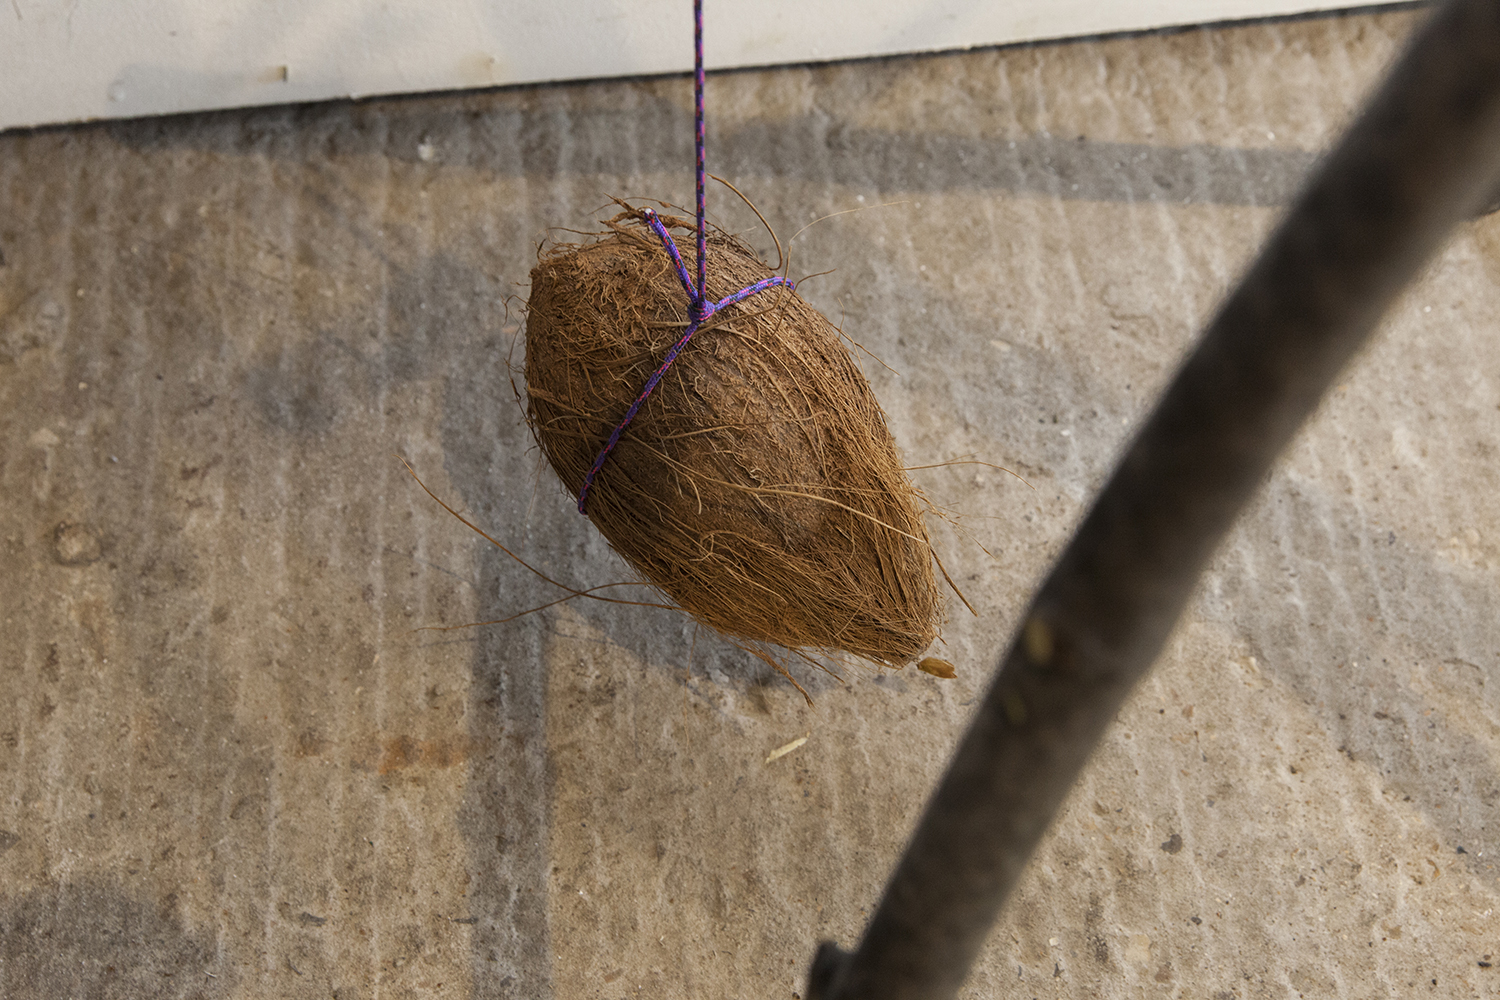 Splice / Dead (detail) — Wooden poles, rope, coconut and fig branch, 2019.